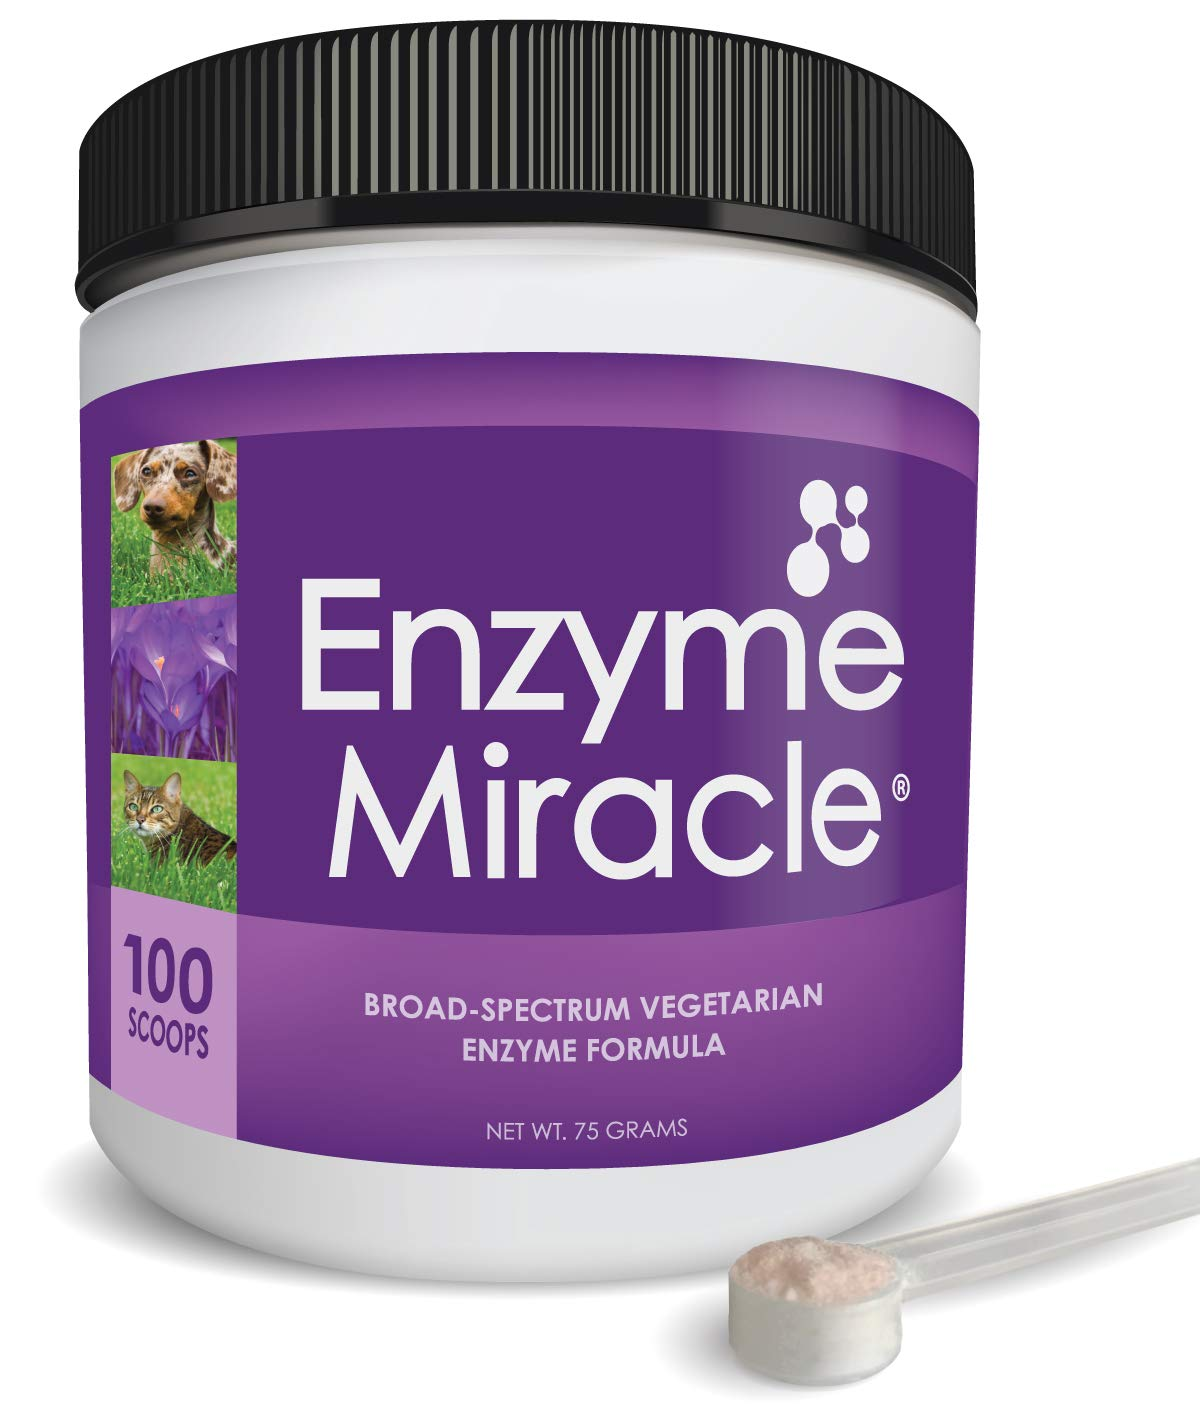 NUSENTIA Enzyme Miracle   Pet Enzymes (Advanced Plant-Based Powder) - 100 Servings - Systemic & Digestive Enzymes - Natural Supplement